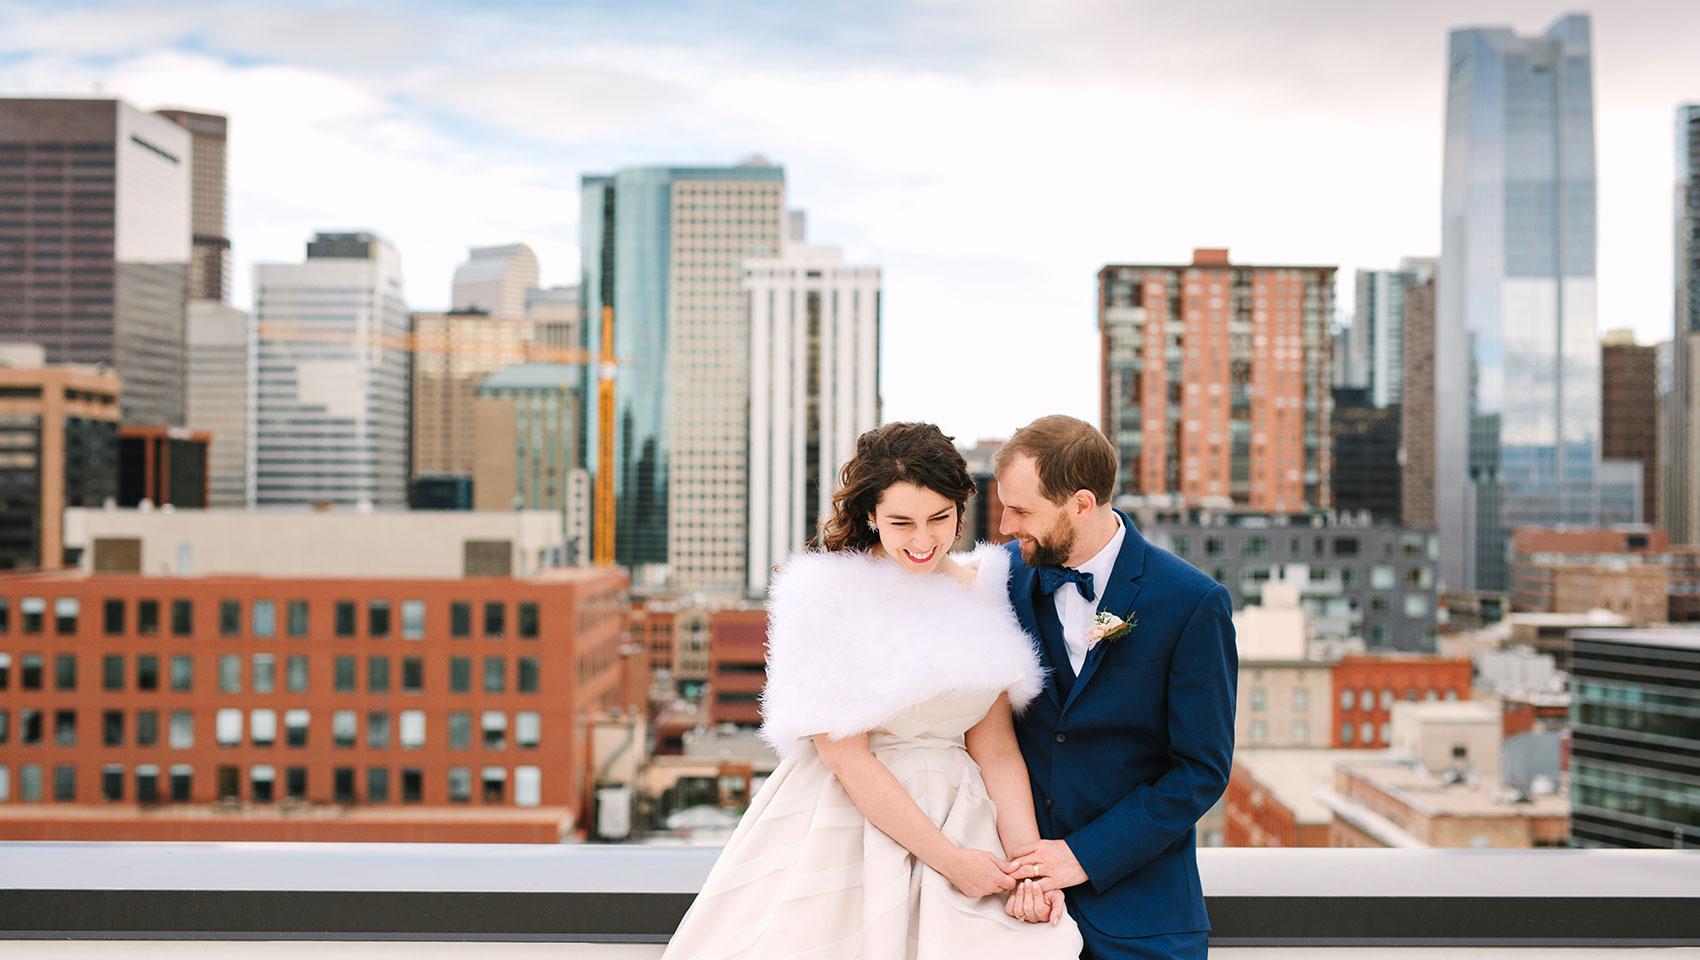 Grays Rooftop Photo as Newlyweds